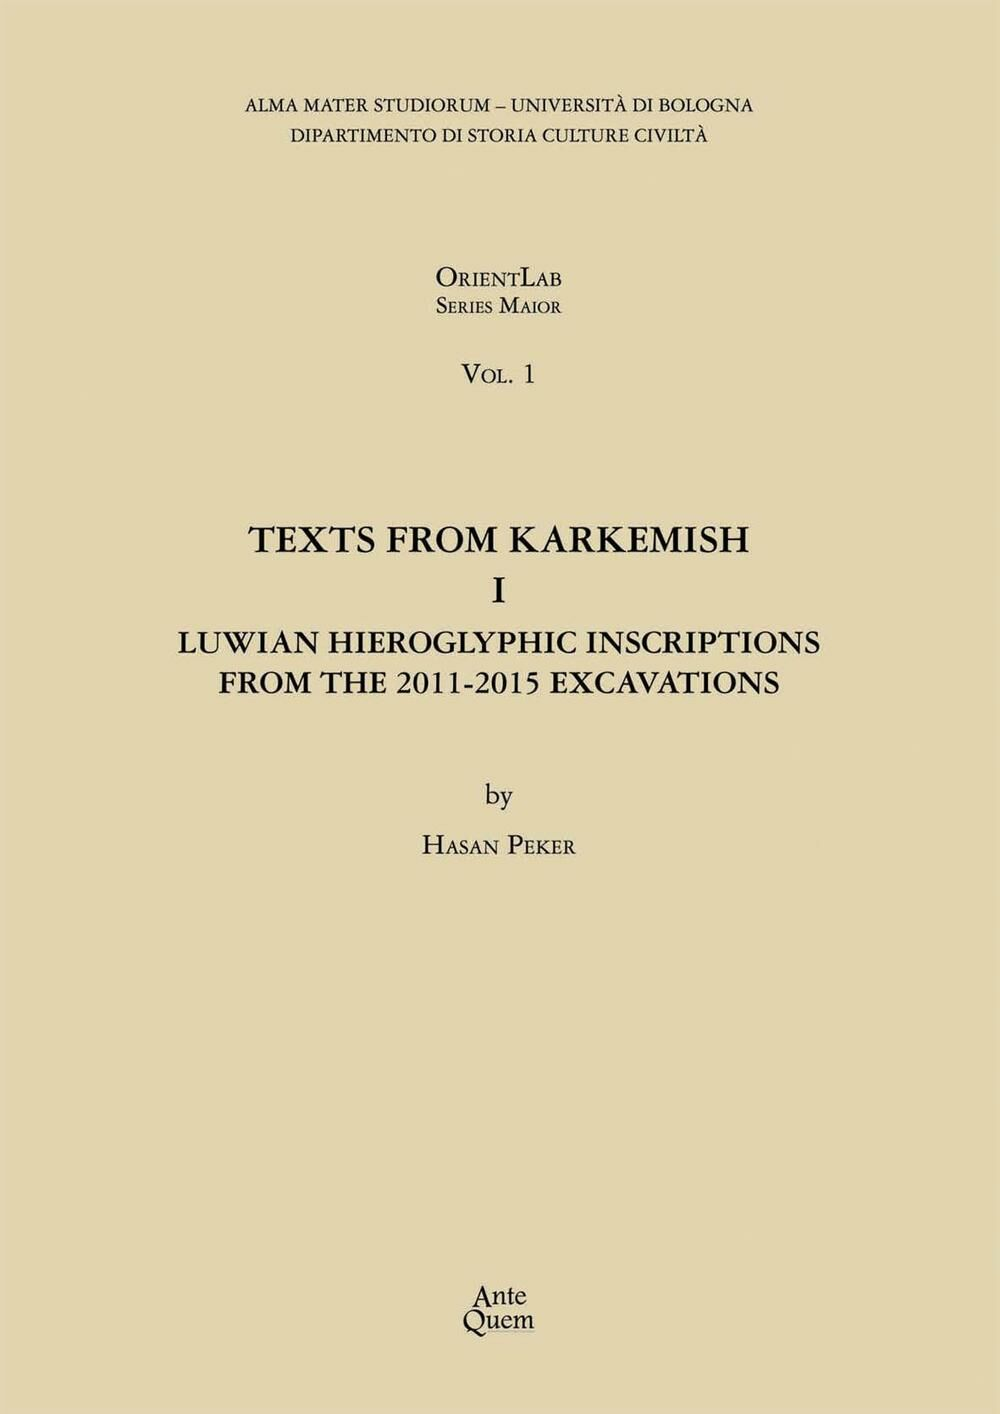 Texts from Karkemish I. Luwian Hieroglyphic Inscriptions from the 2011-2015 Excavations